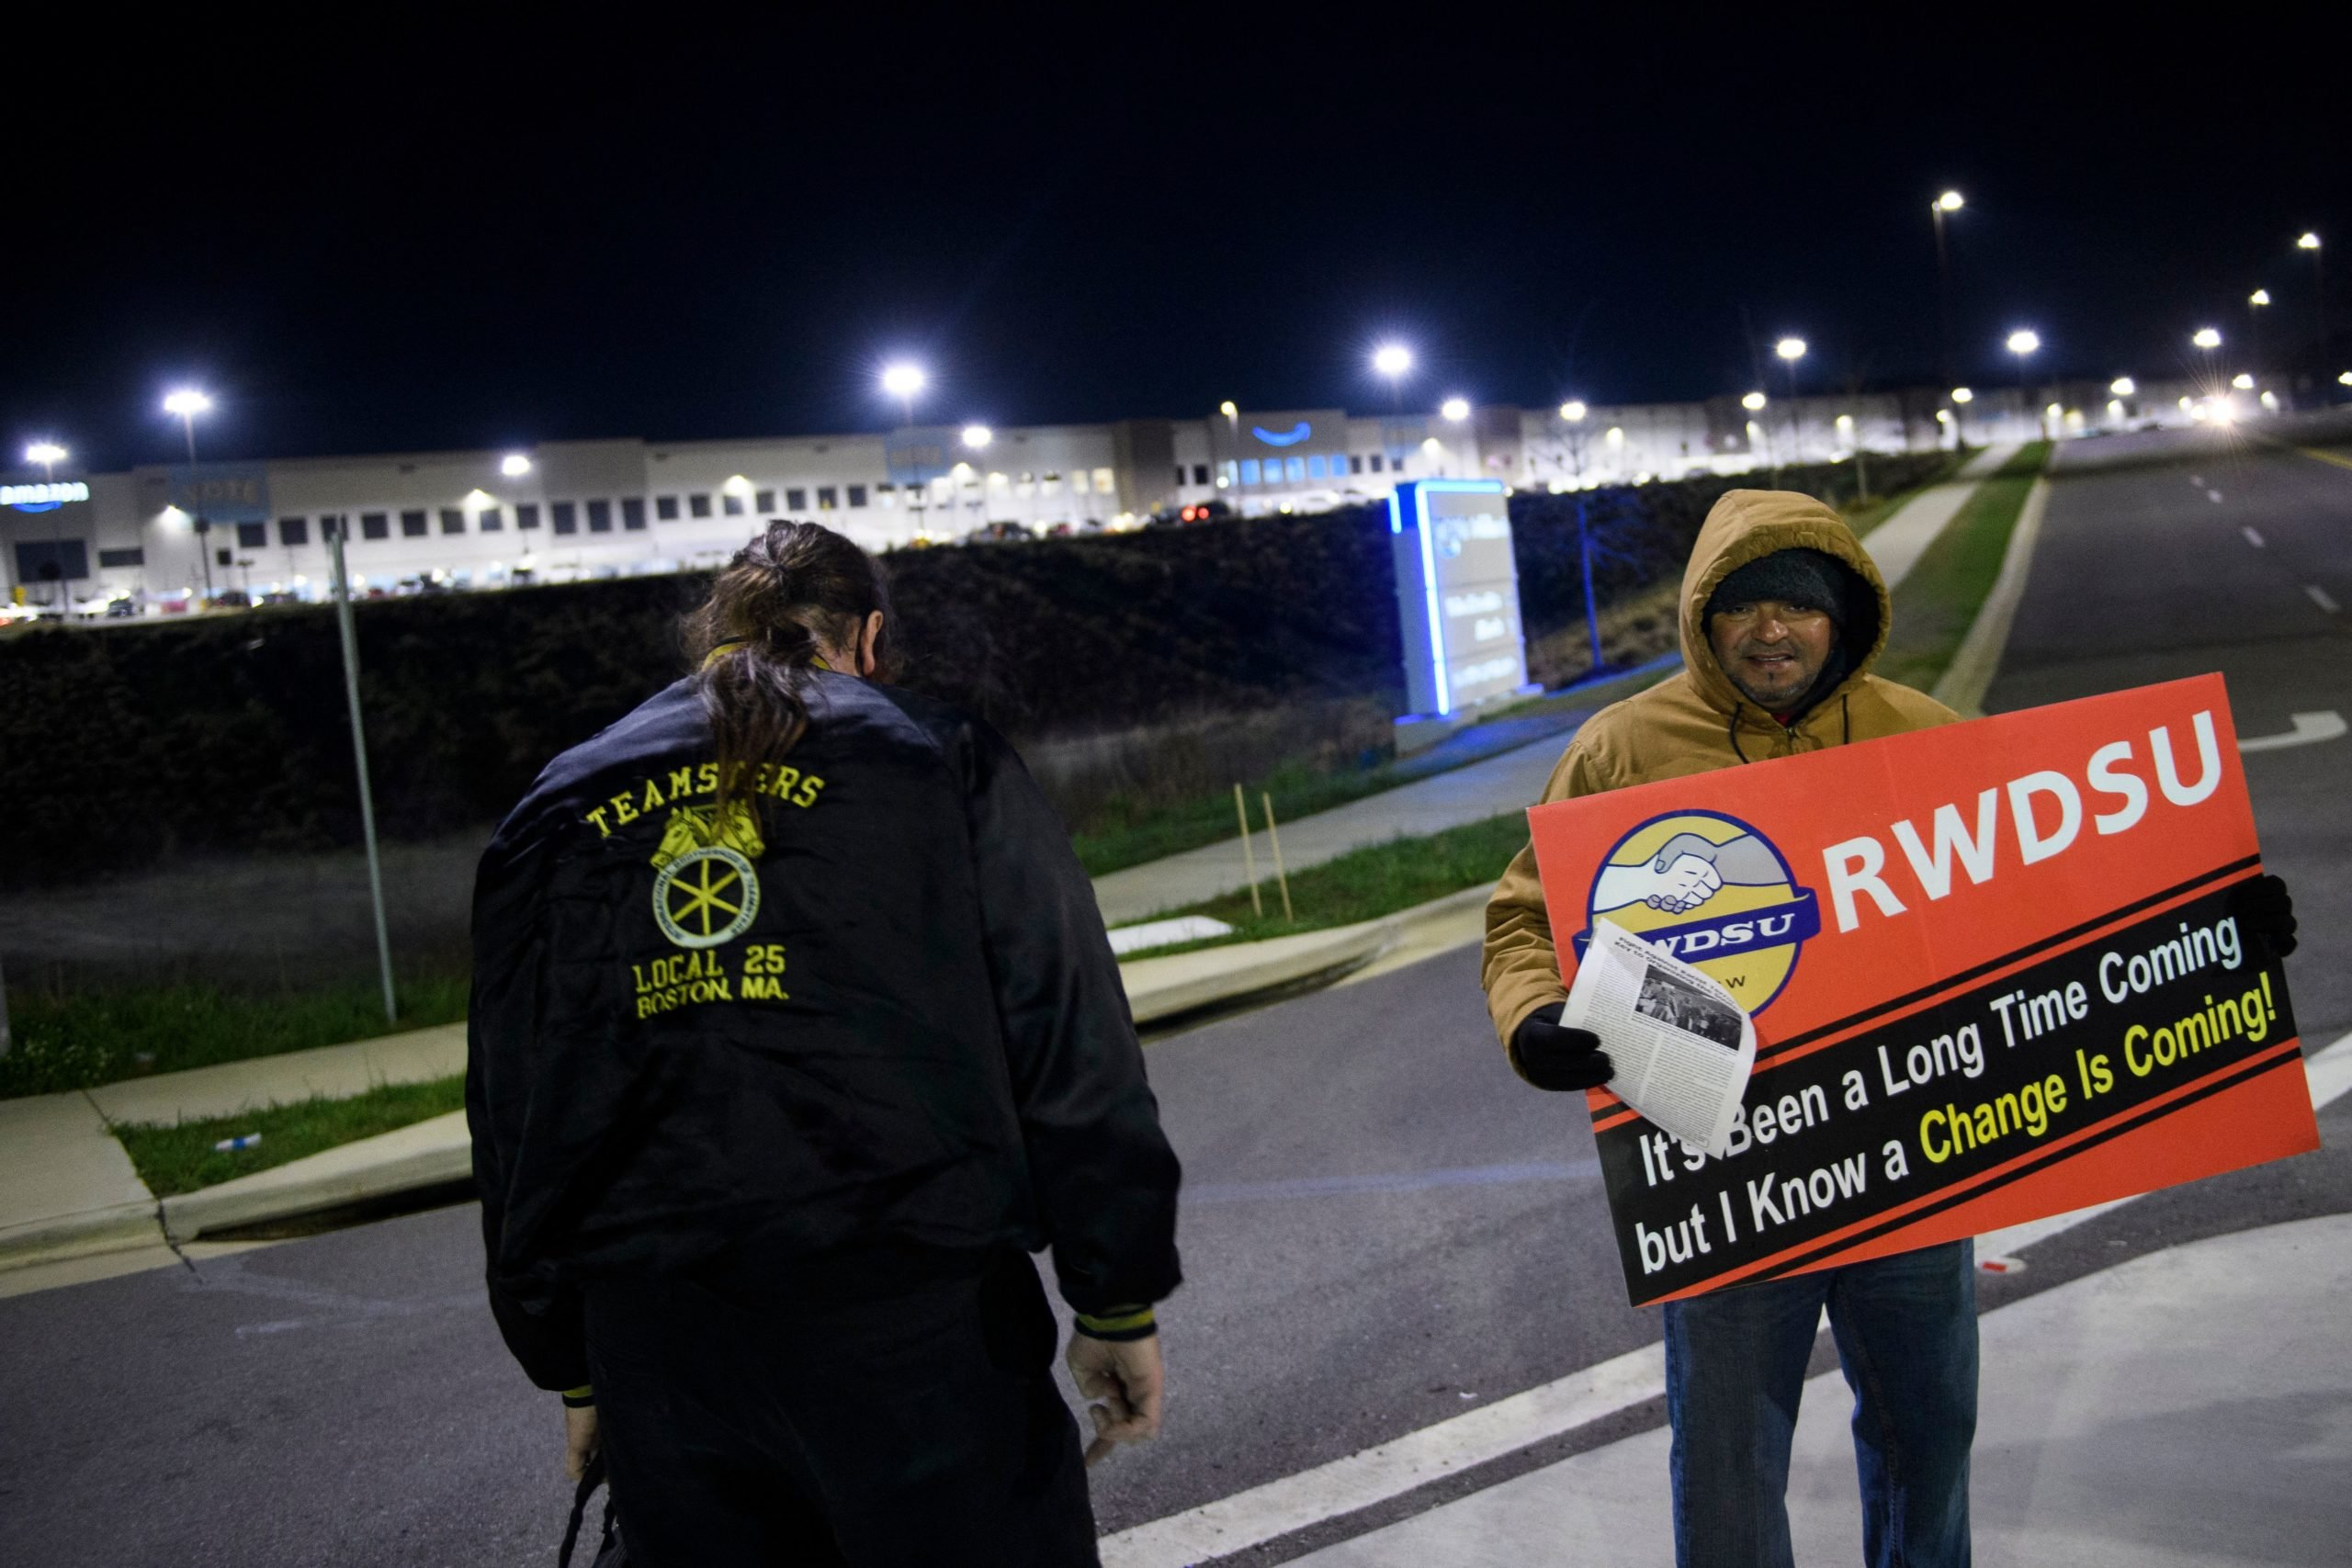 Union supporters distribute information outside of Amazon's fulfillment center in Bessemer, Alabama on March 29. (Patrick T. Fallon/AFP via Getty Images)